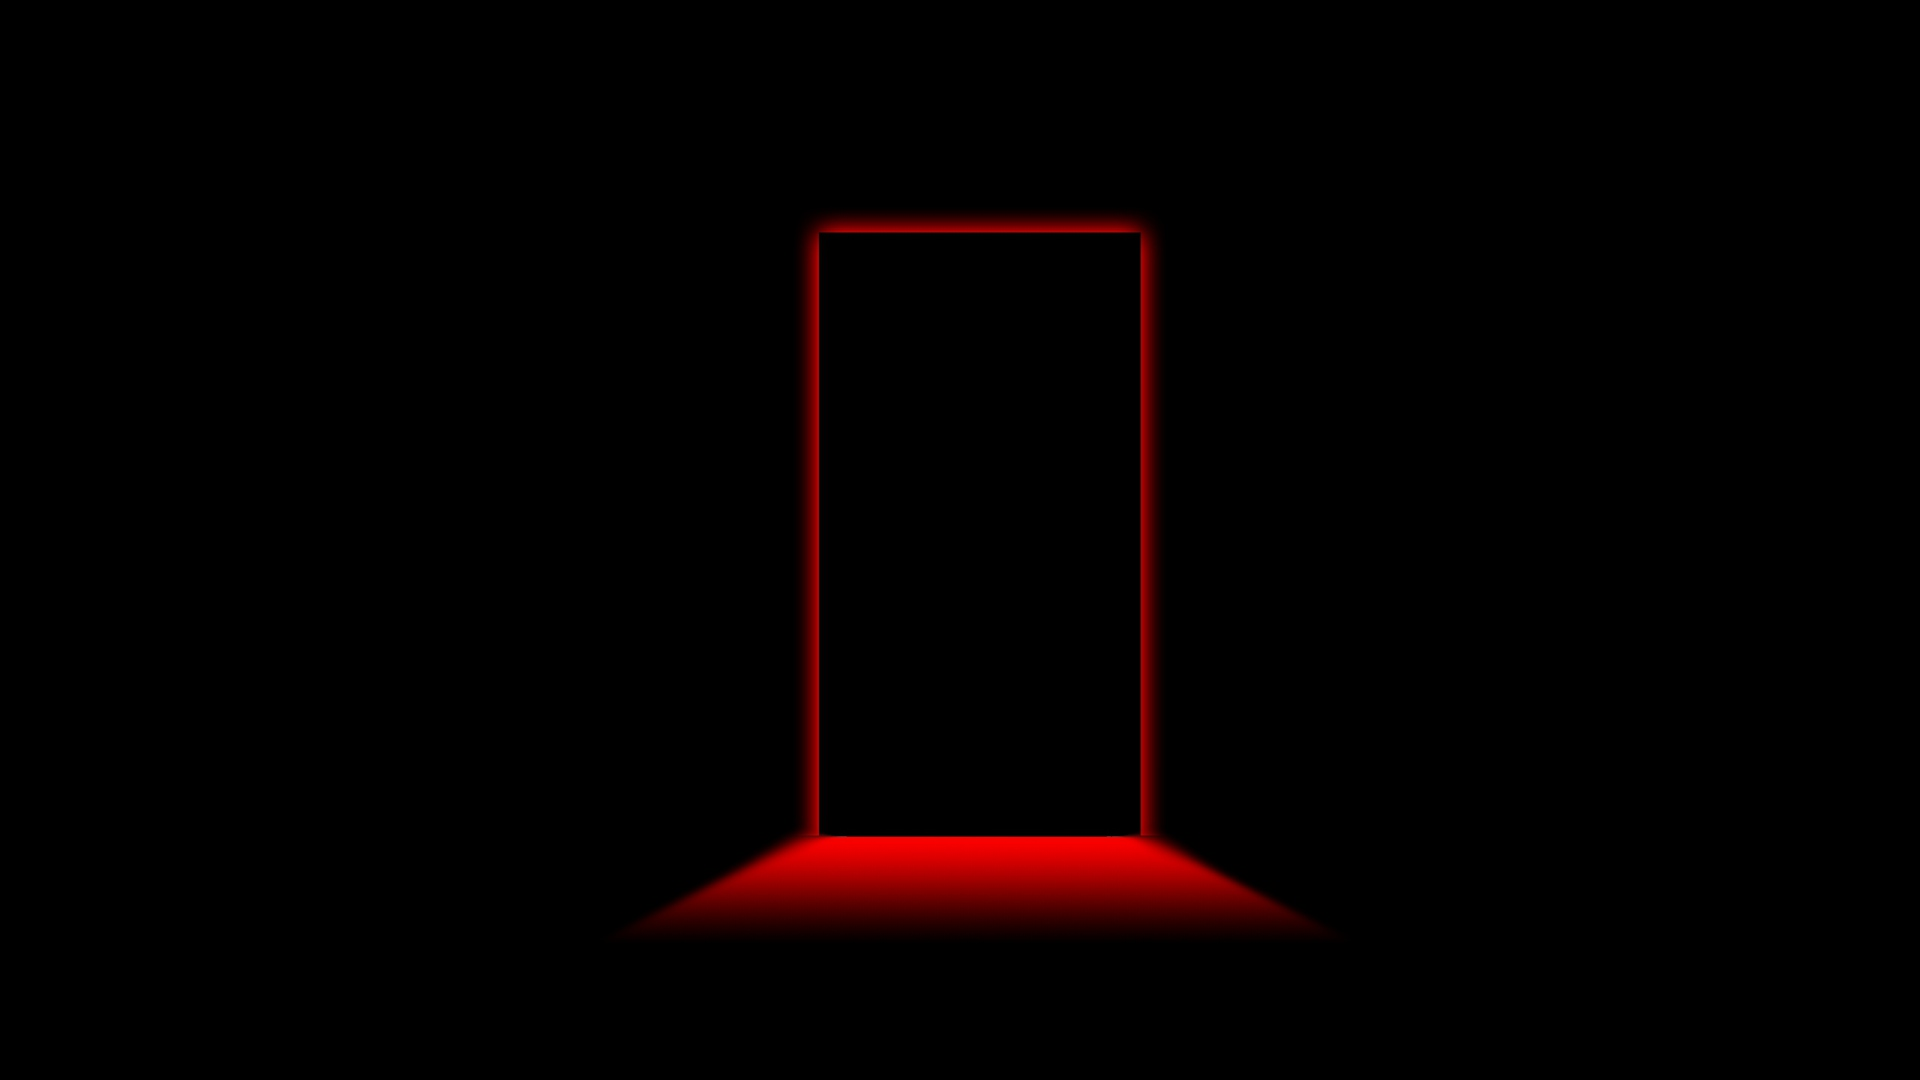 Download wallpaper 1920x1080 door light shadow black red full hd get the latest door light shadow news pictures and videos and learn all about door light shadow from wallpapers4u your wallpaper news source voltagebd Gallery